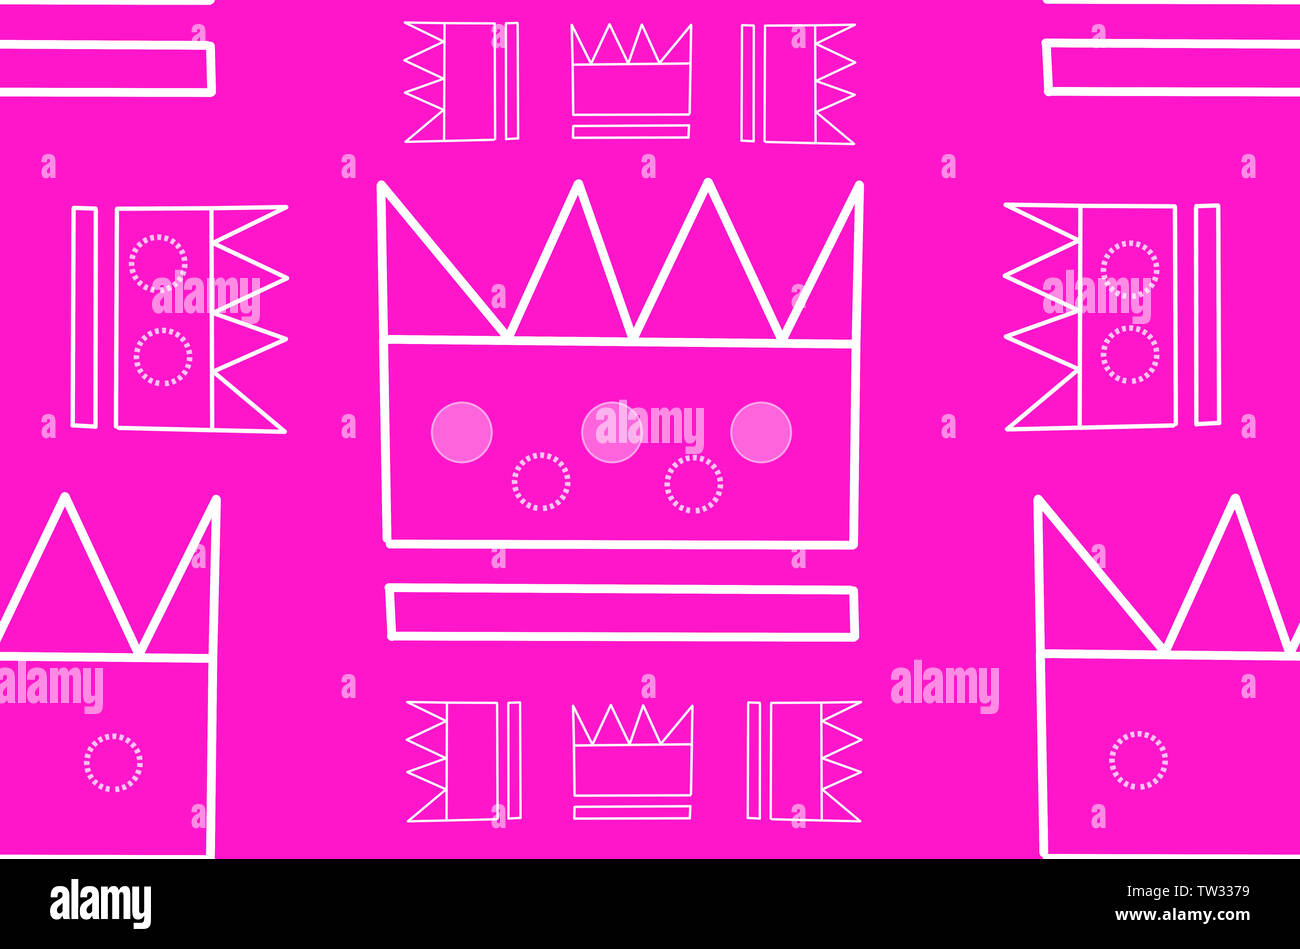 Princess crown on pink background seamless pattern for girls room wallpaper. Simple pattern can be used for textile. - Stock Image